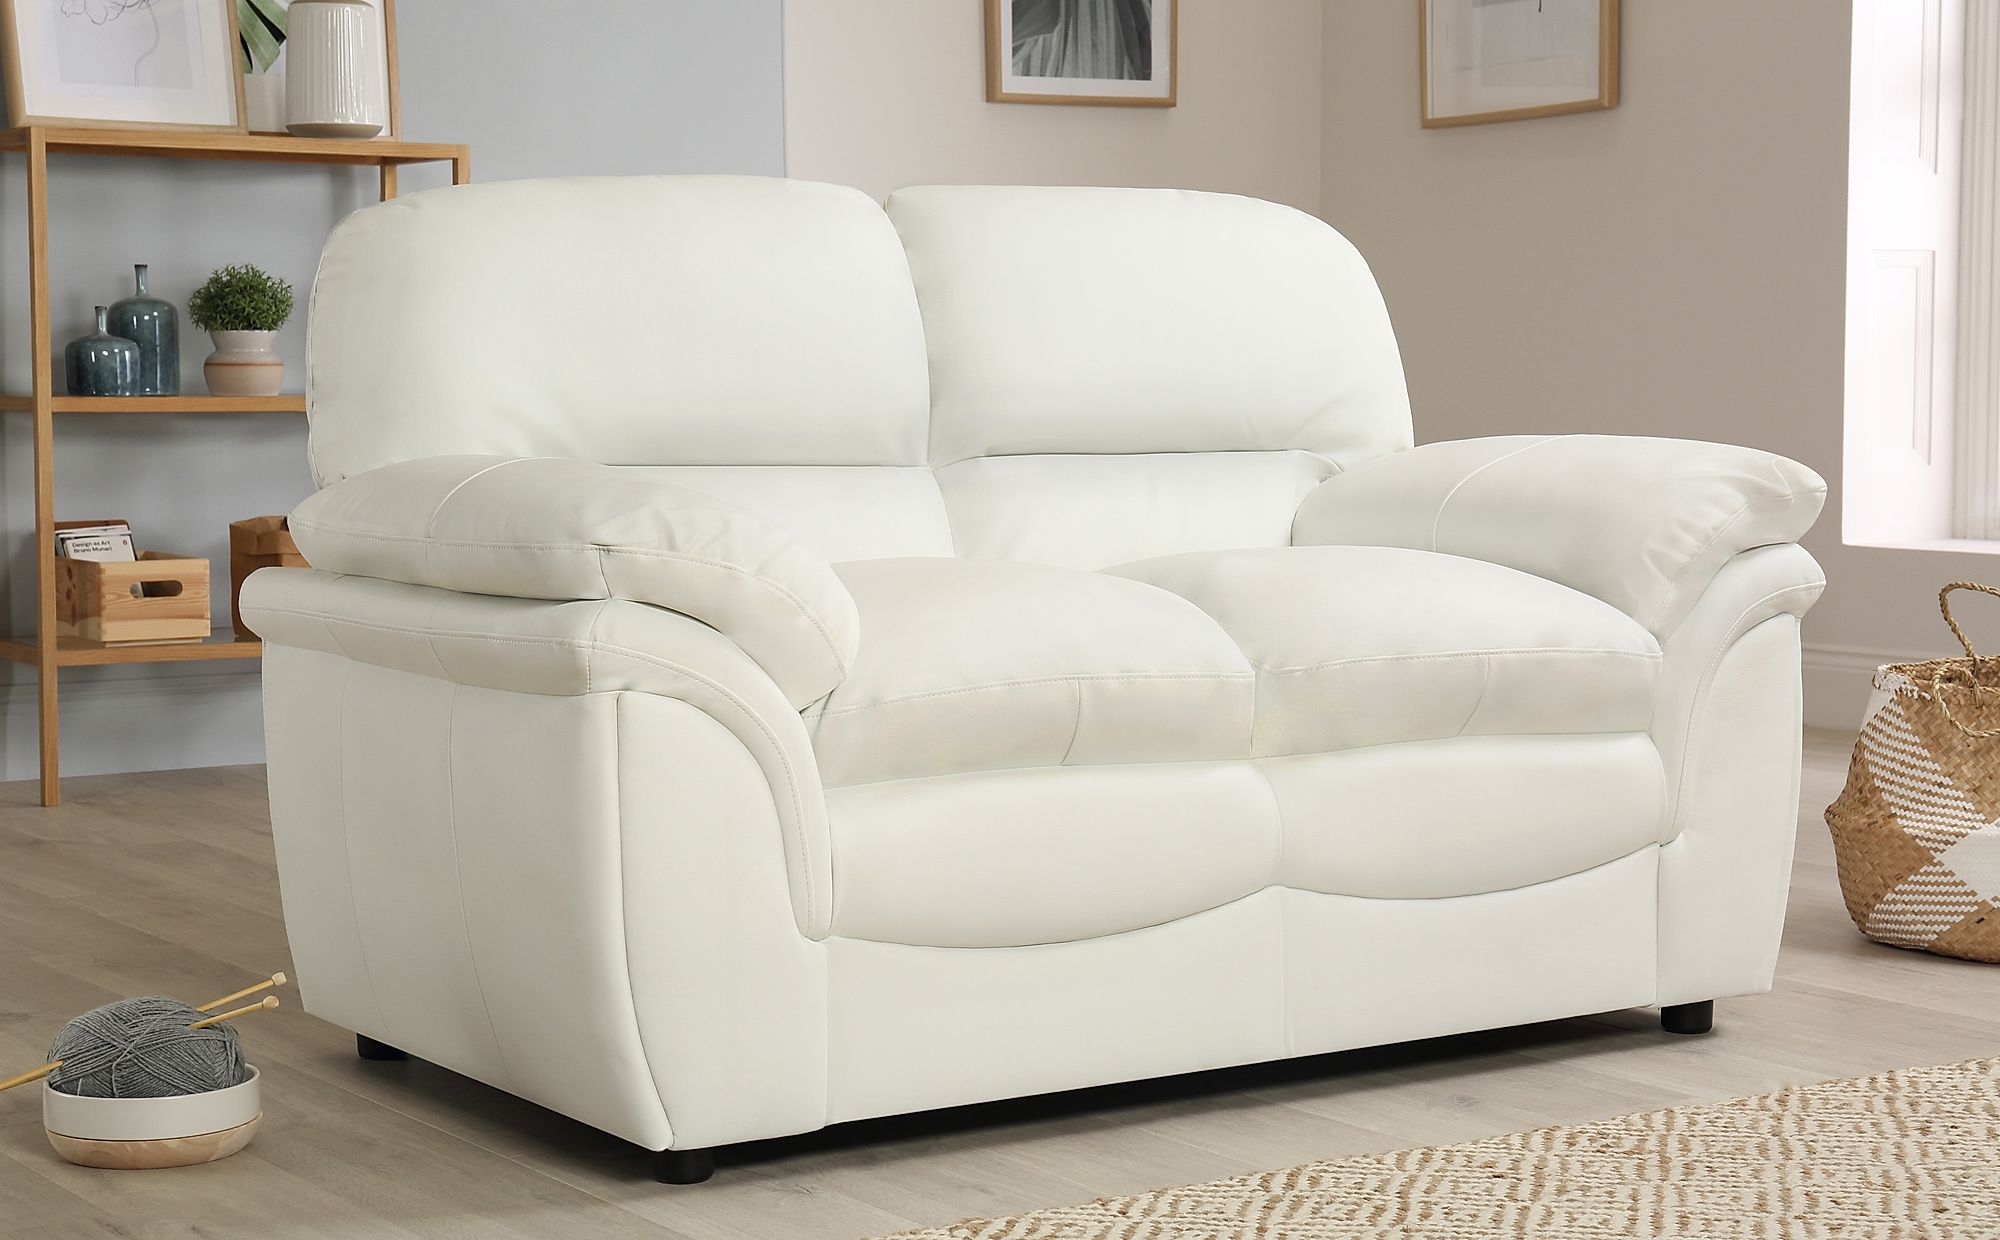 rochester ivory leather 2 seater sofa only 399 99 furniture choice rh furniturechoice co uk ivory leather sofas uk ivory leather sofa repair kit